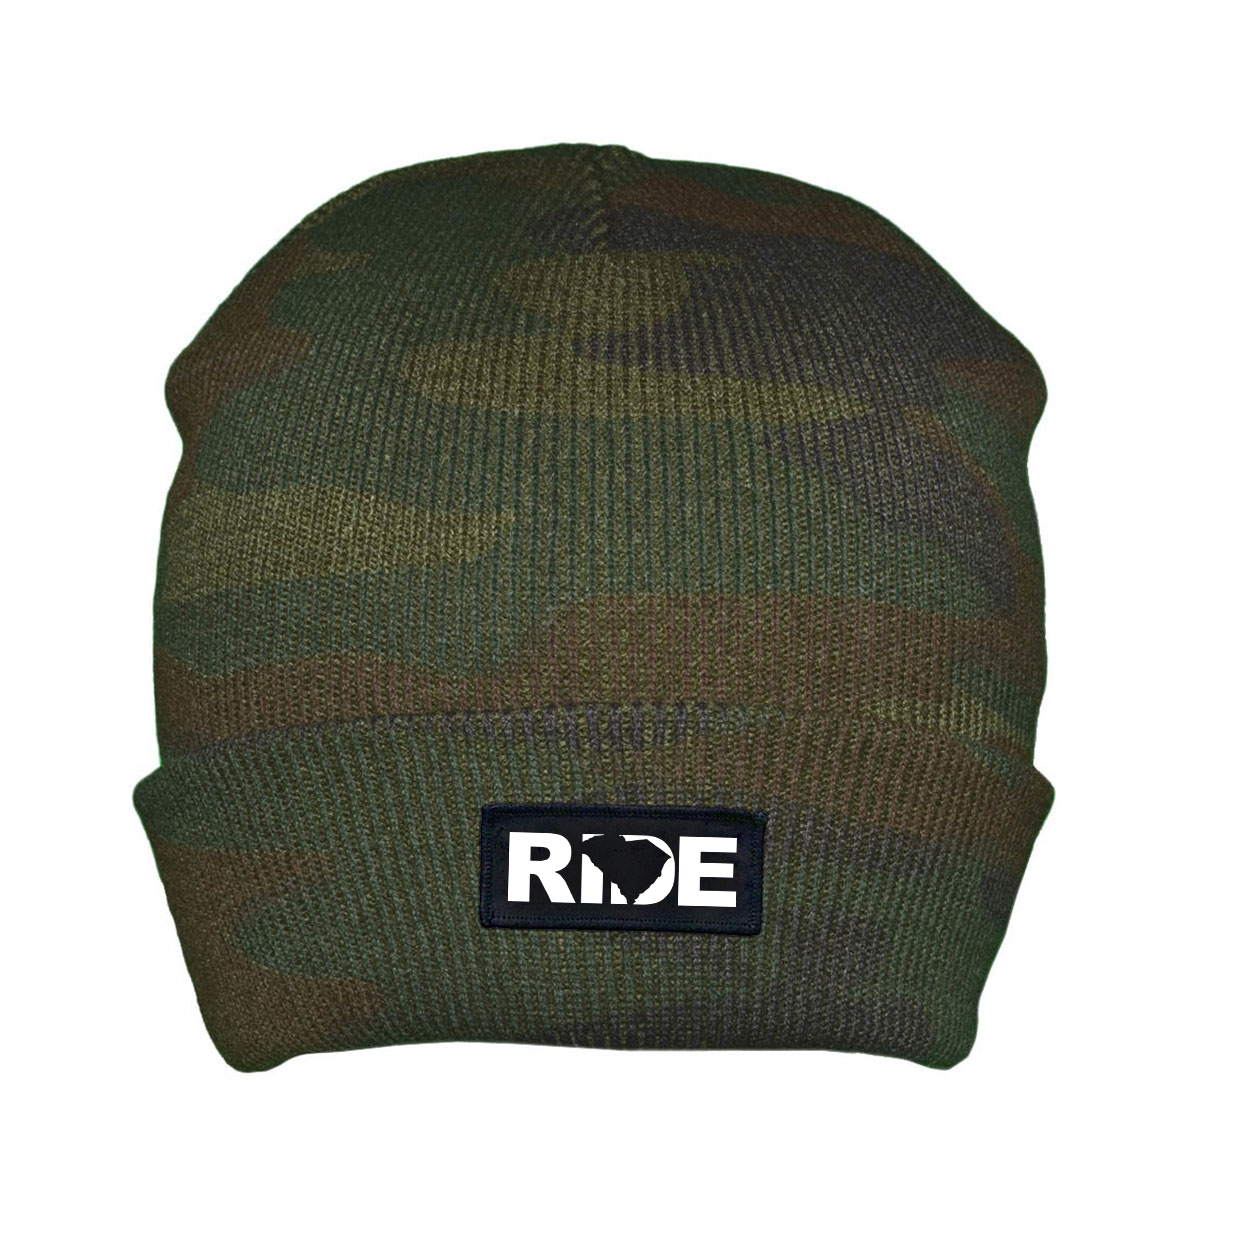 Ride South Carolina Night Out Woven Patch Roll Up Skully Beanie Camo (White Logo)